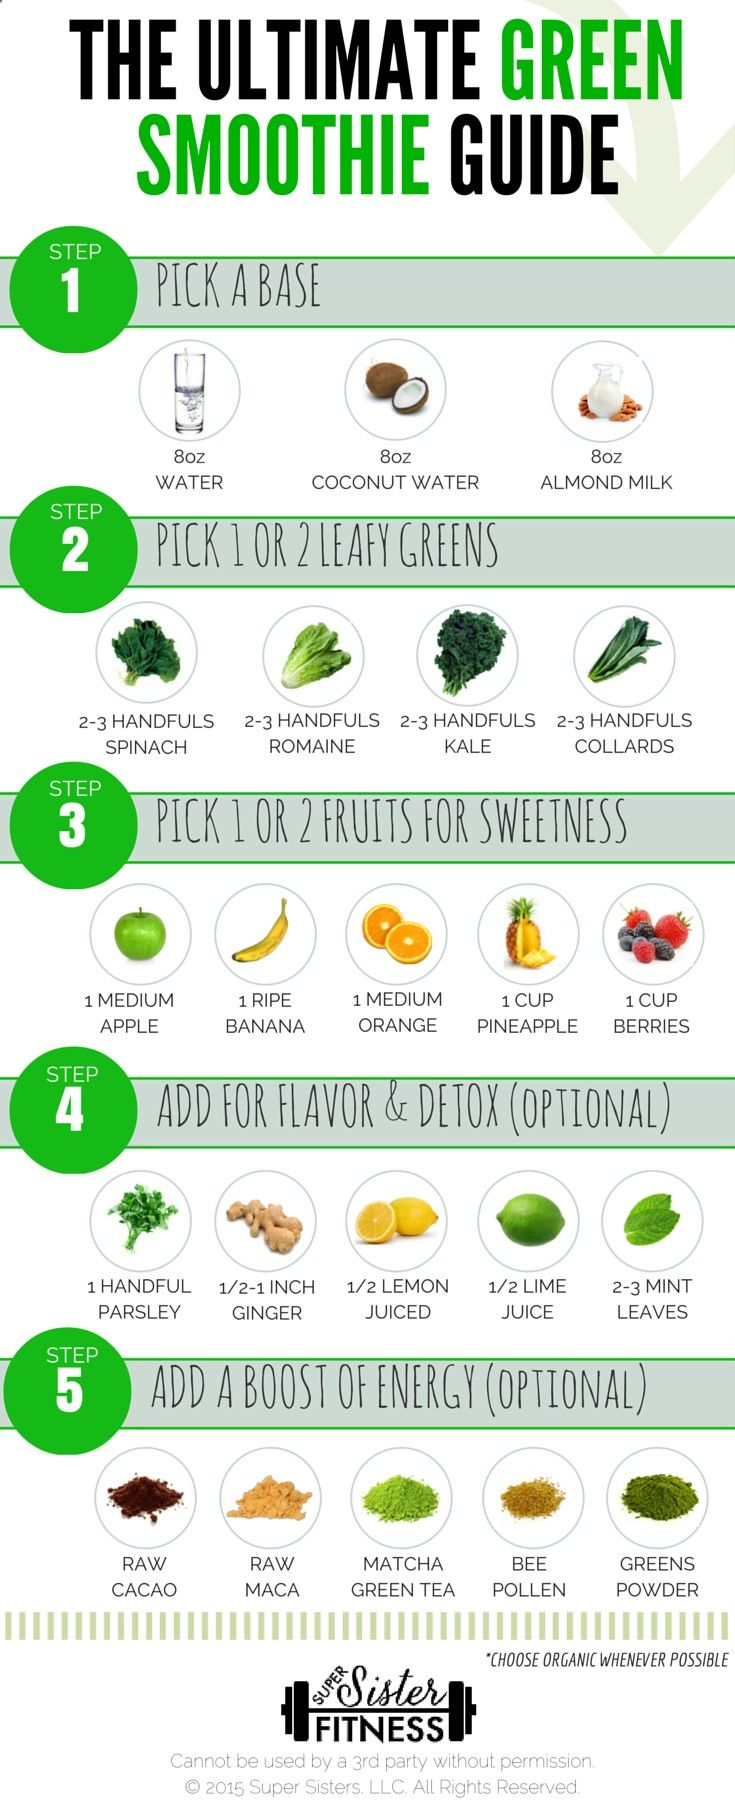 I just tried this weight loss smoothie and it tastes so creamy and filling. I am blown away I can lose weight in my sleep and I can find all these ingredients locally too which is a bonus. This is where I got the free smoothie recipe card: www.greenthickies...